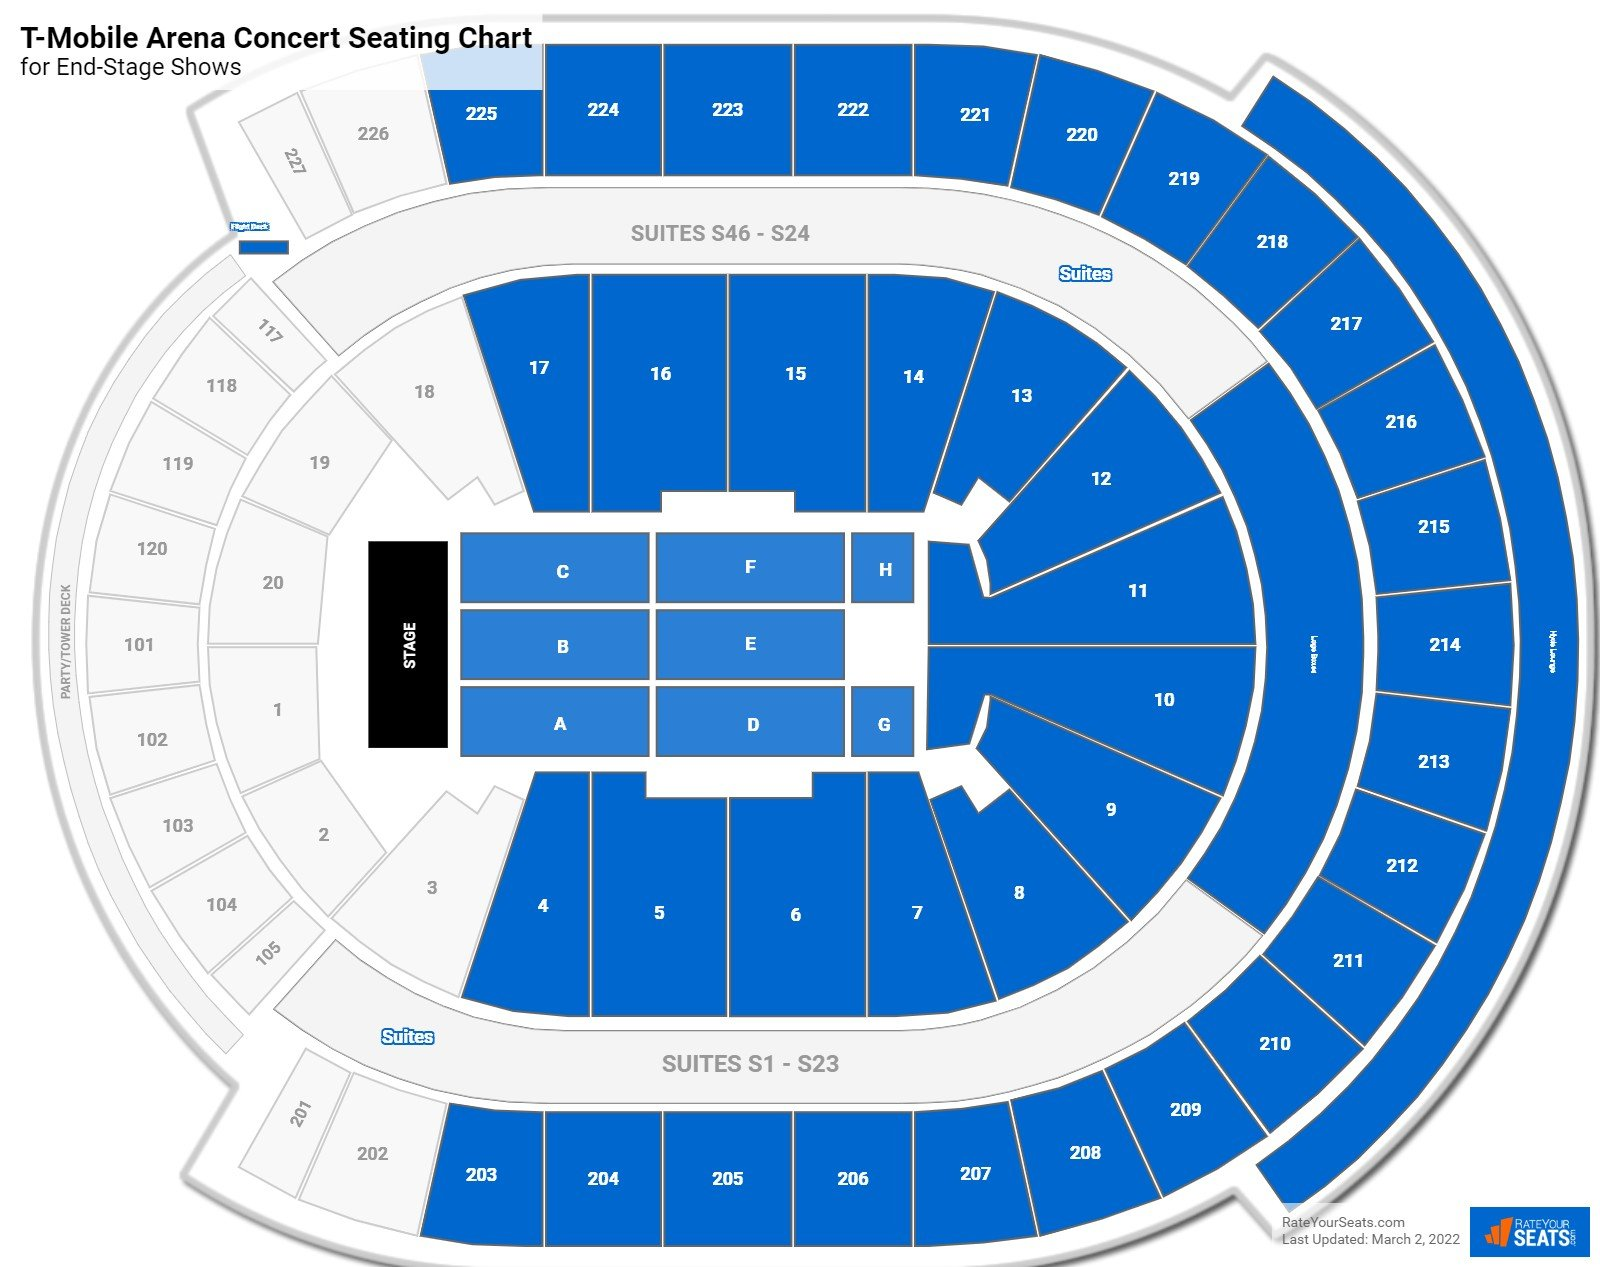 T Mobile Arena Seating Charts For Concerts Rateyourseats Com